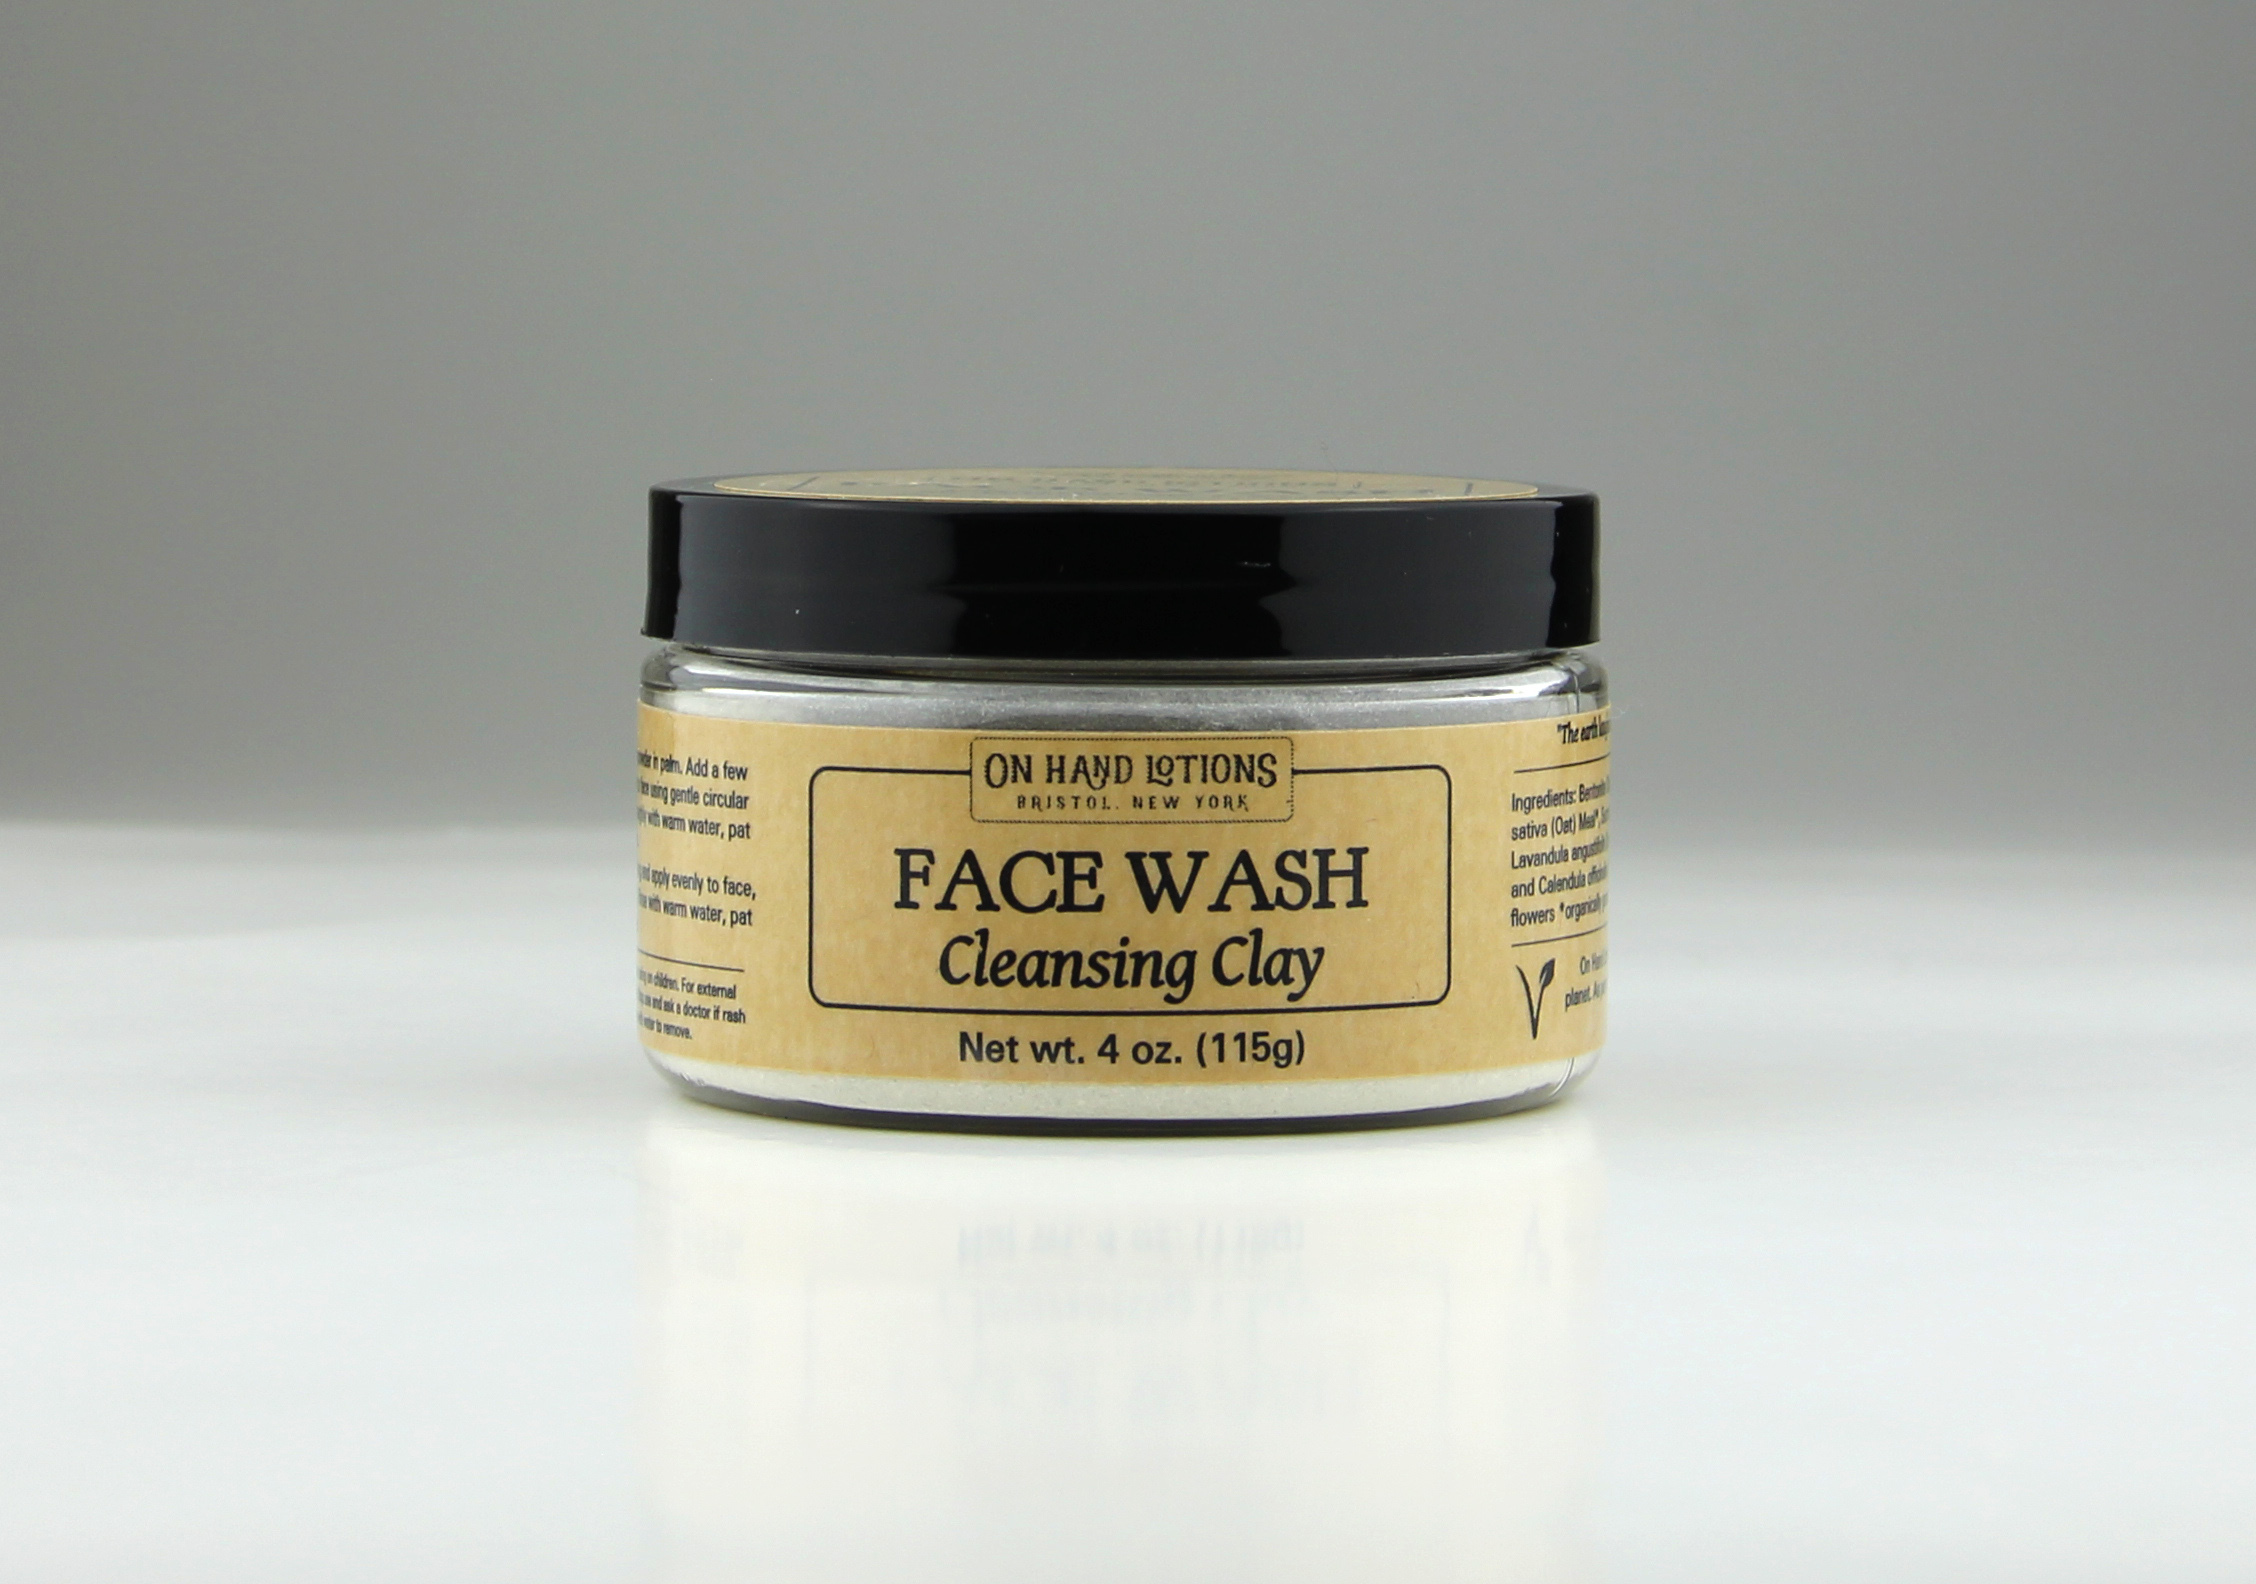 Cleansing Clay Face Wash & Mask 00580